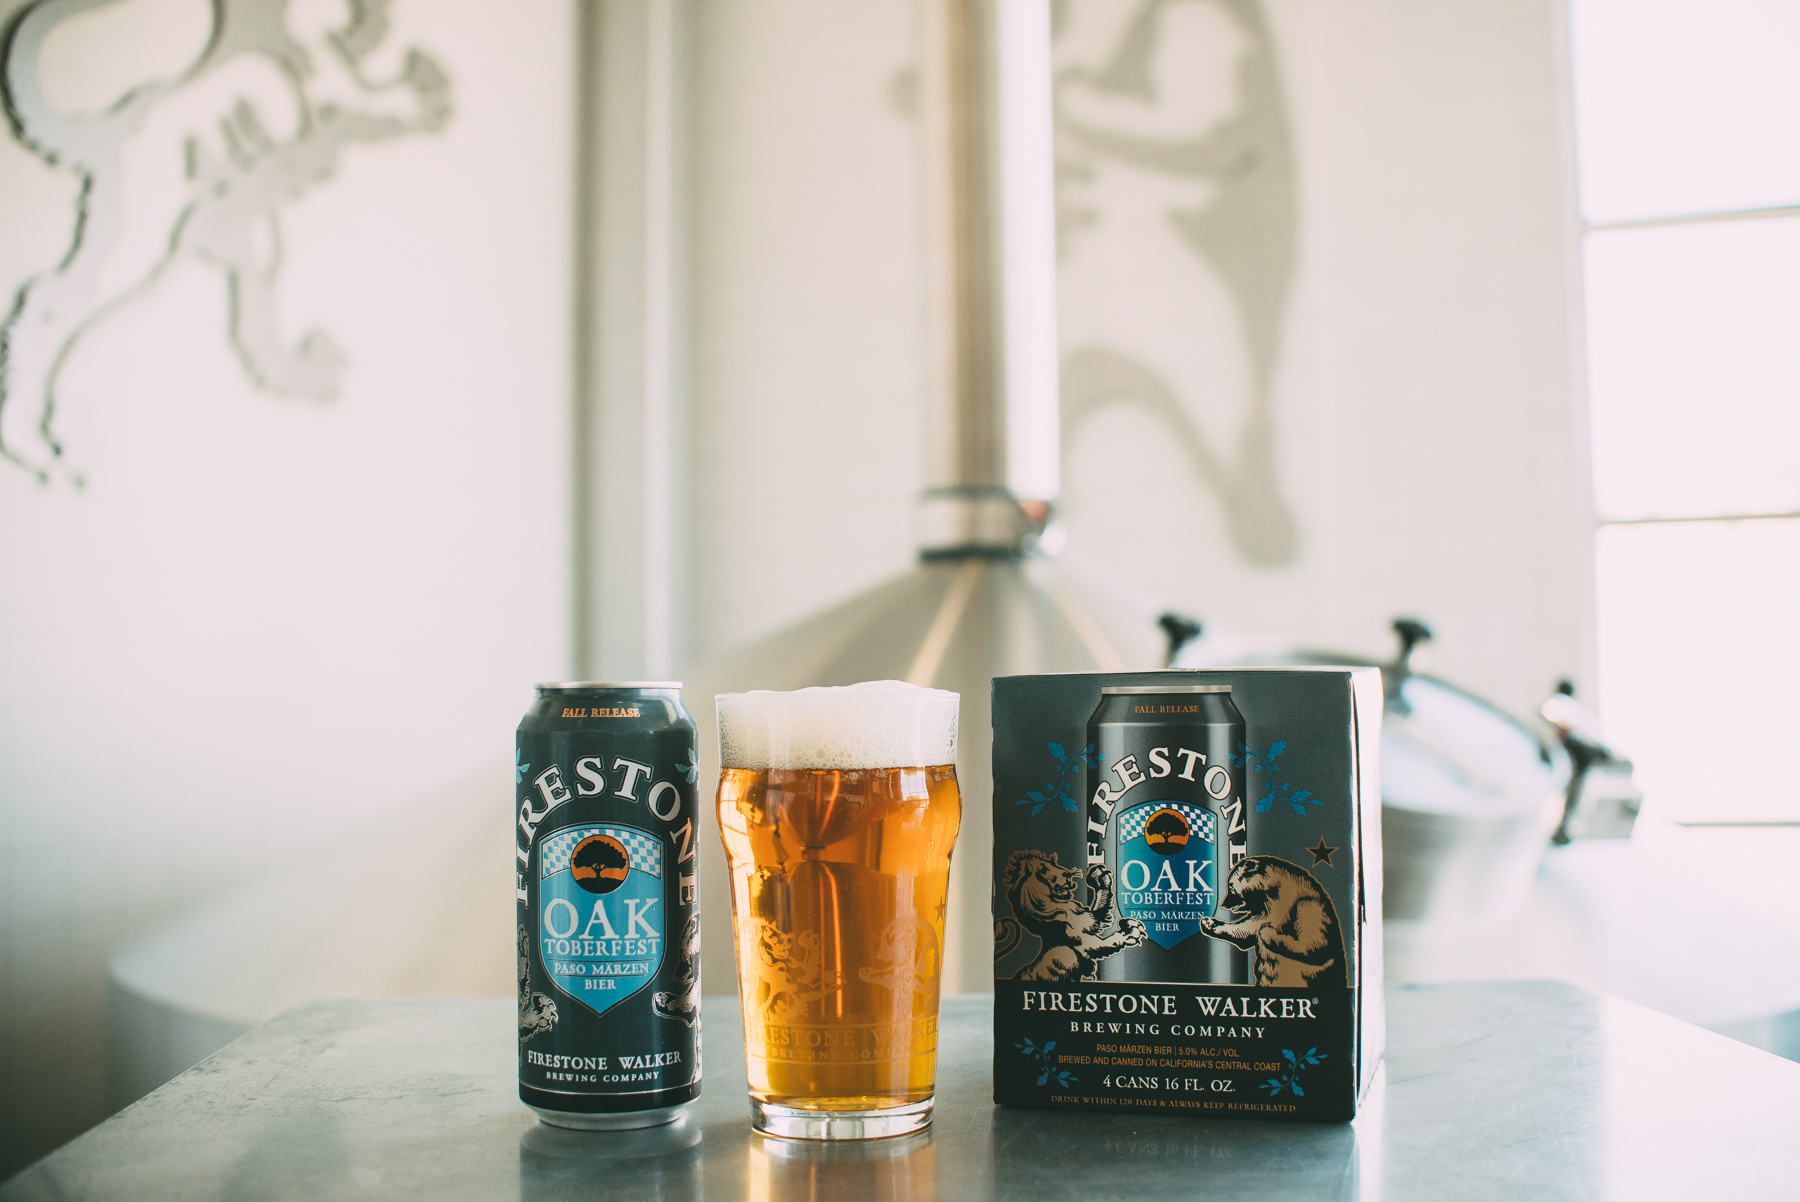 A pour of FIrestone Walker Oaktoberfest from its new packaging, a 16 oz. can. (image courtesy of Firestone Walker)